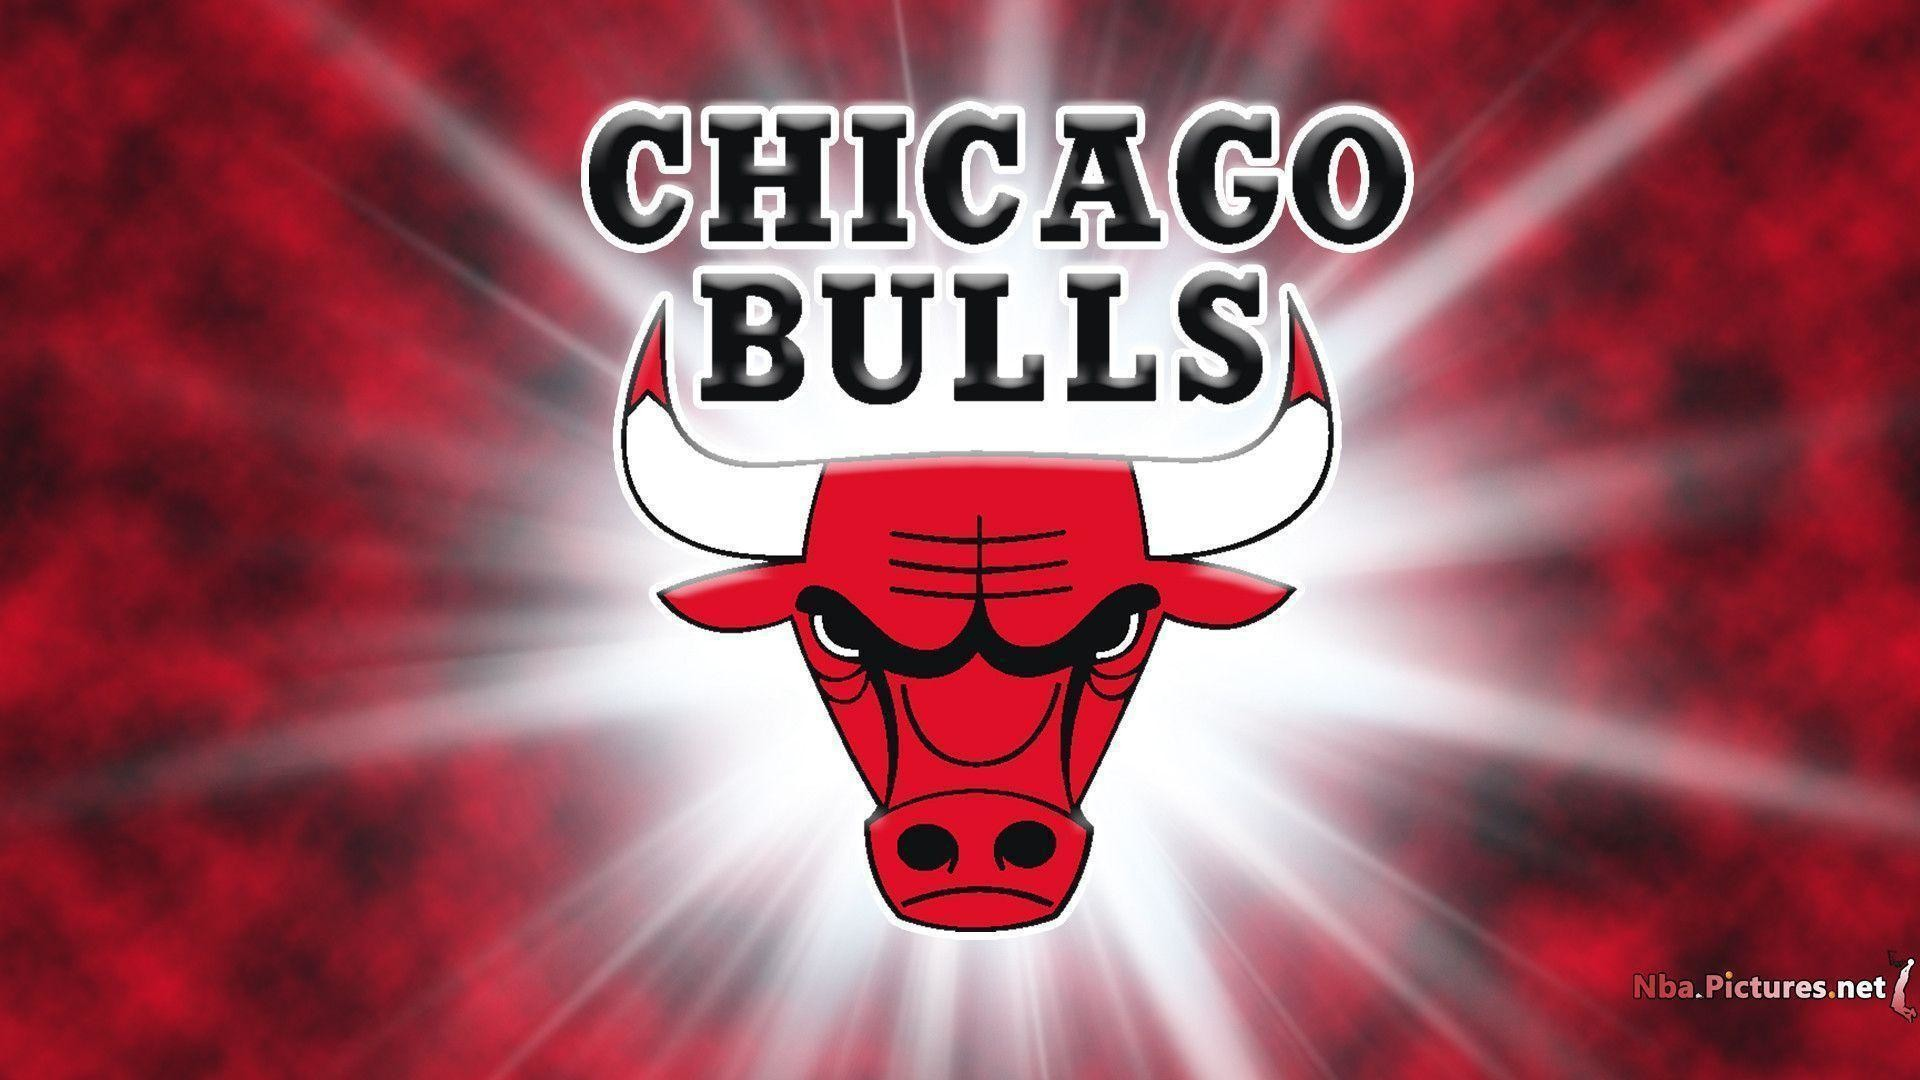 1920x1080 - Chicago Bulls HD 42